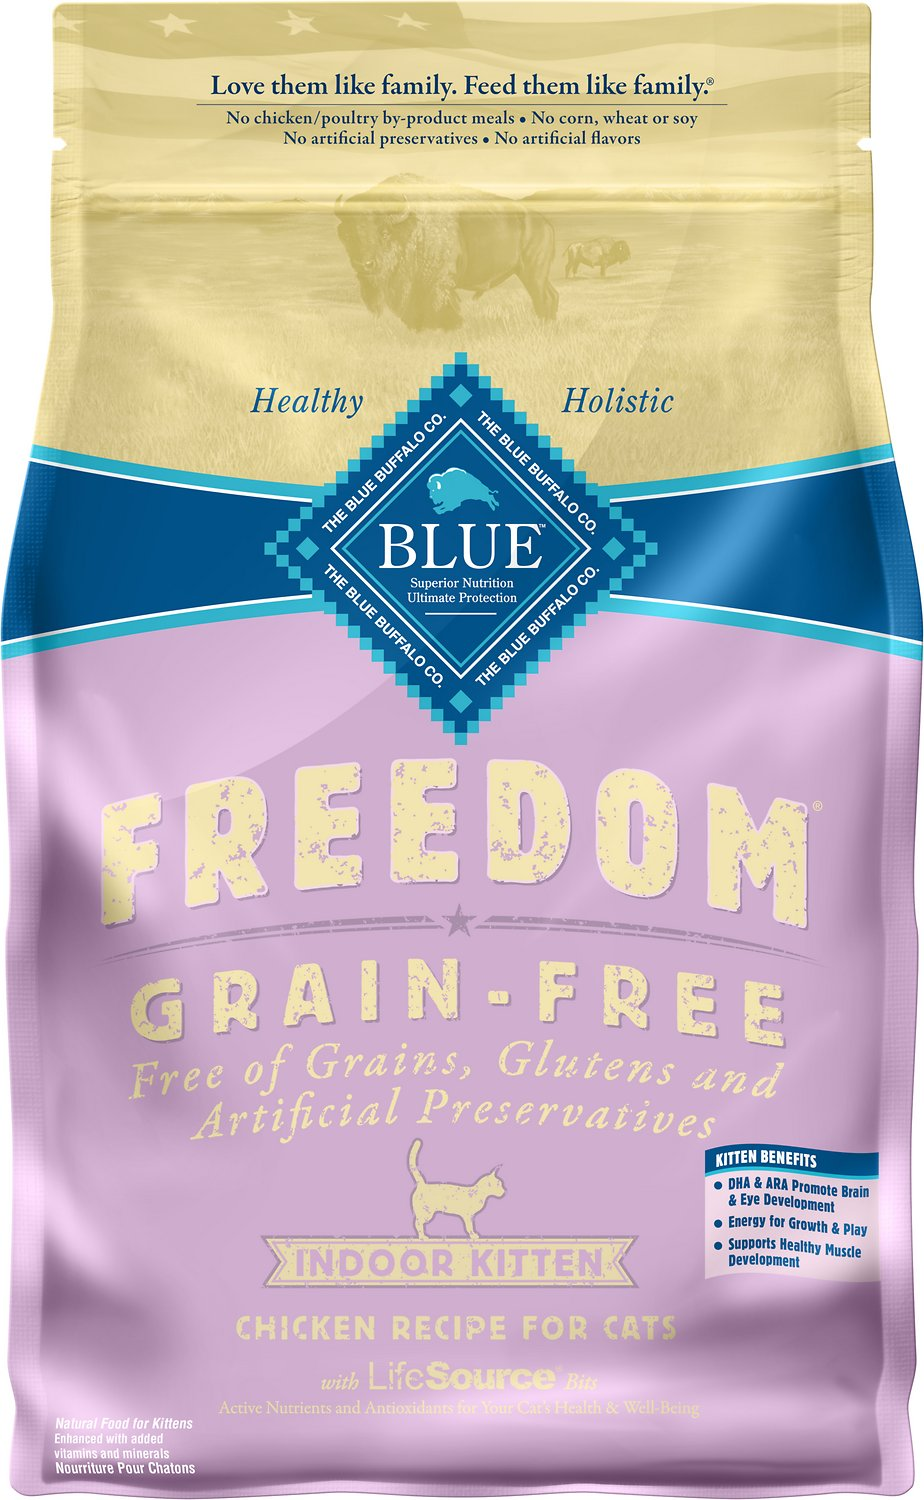 Blue Buffalo Freedom Indoor Kitten Chicken Recipe Grain-Free Dry Cat Food, 5-lb bag (Weights: 5.0 pounds) Image